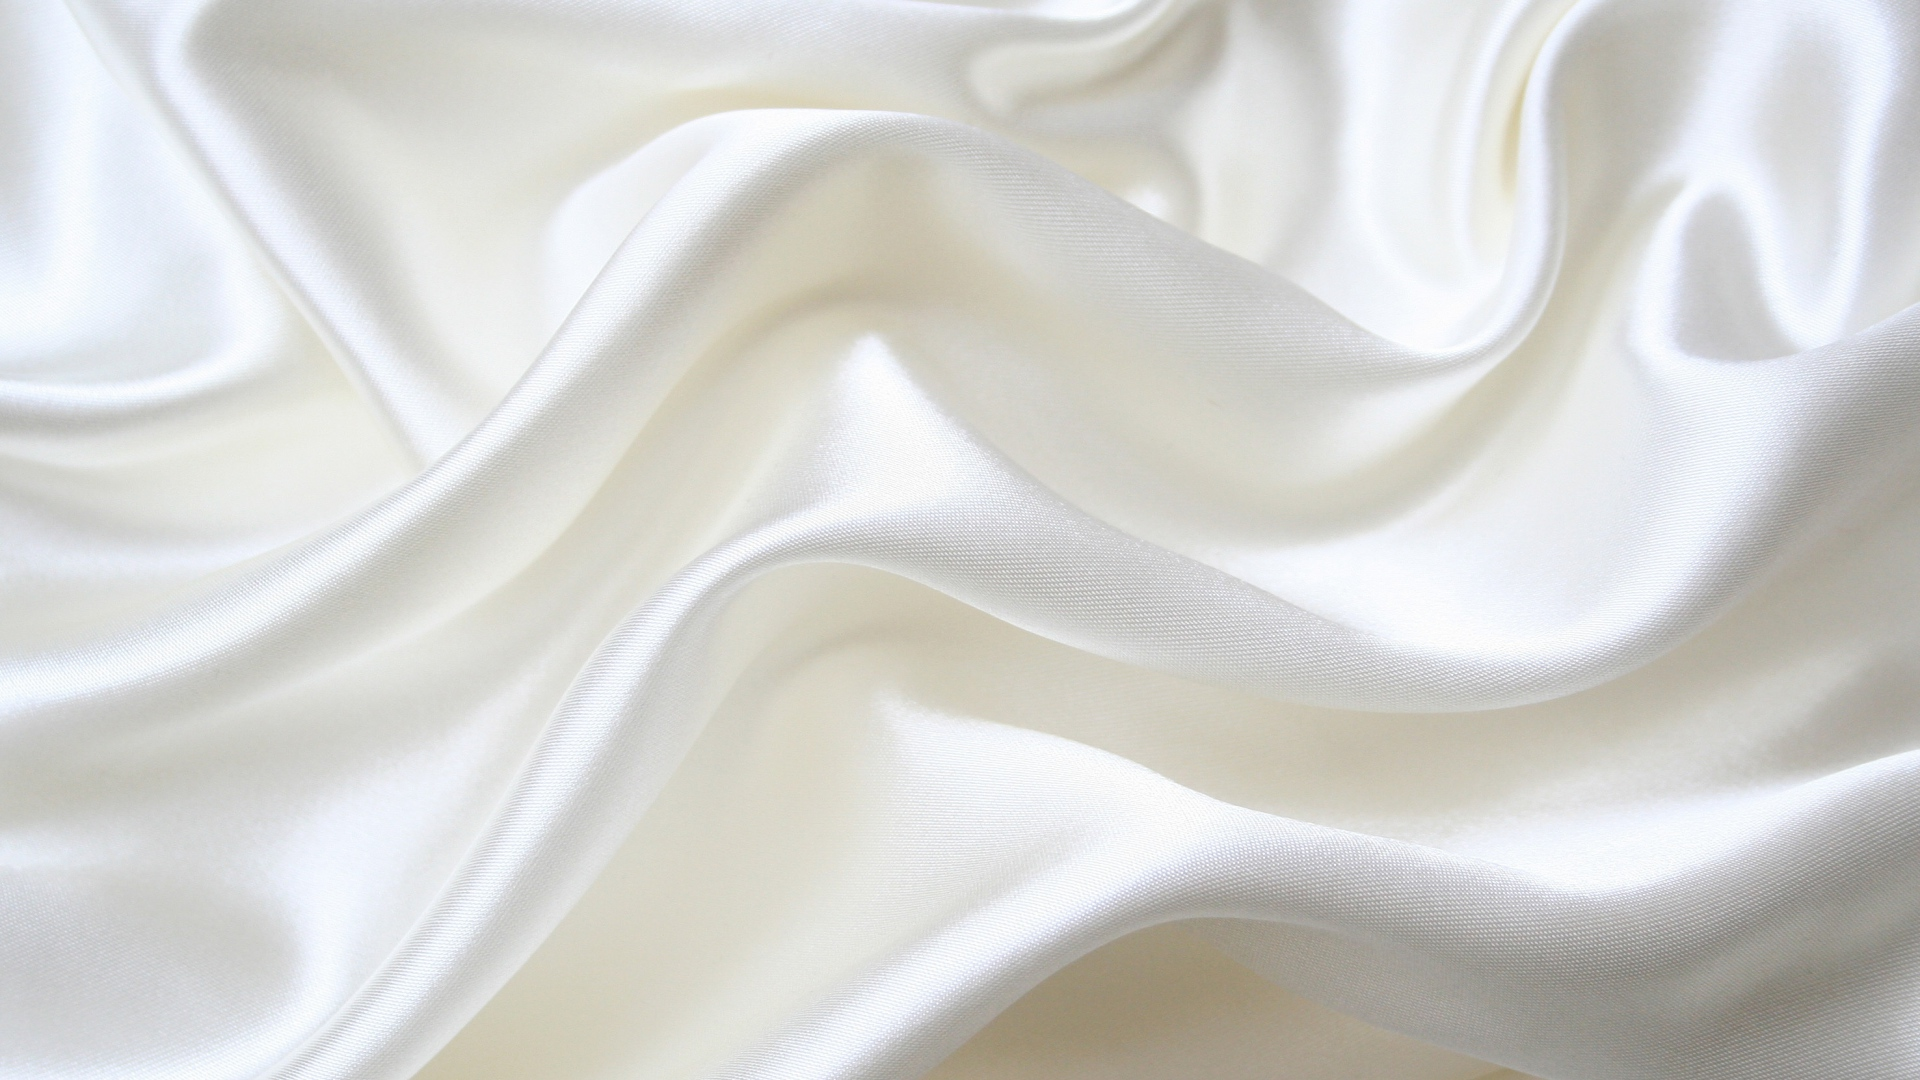 silk_white_fabric_softness_7321_1920x1080